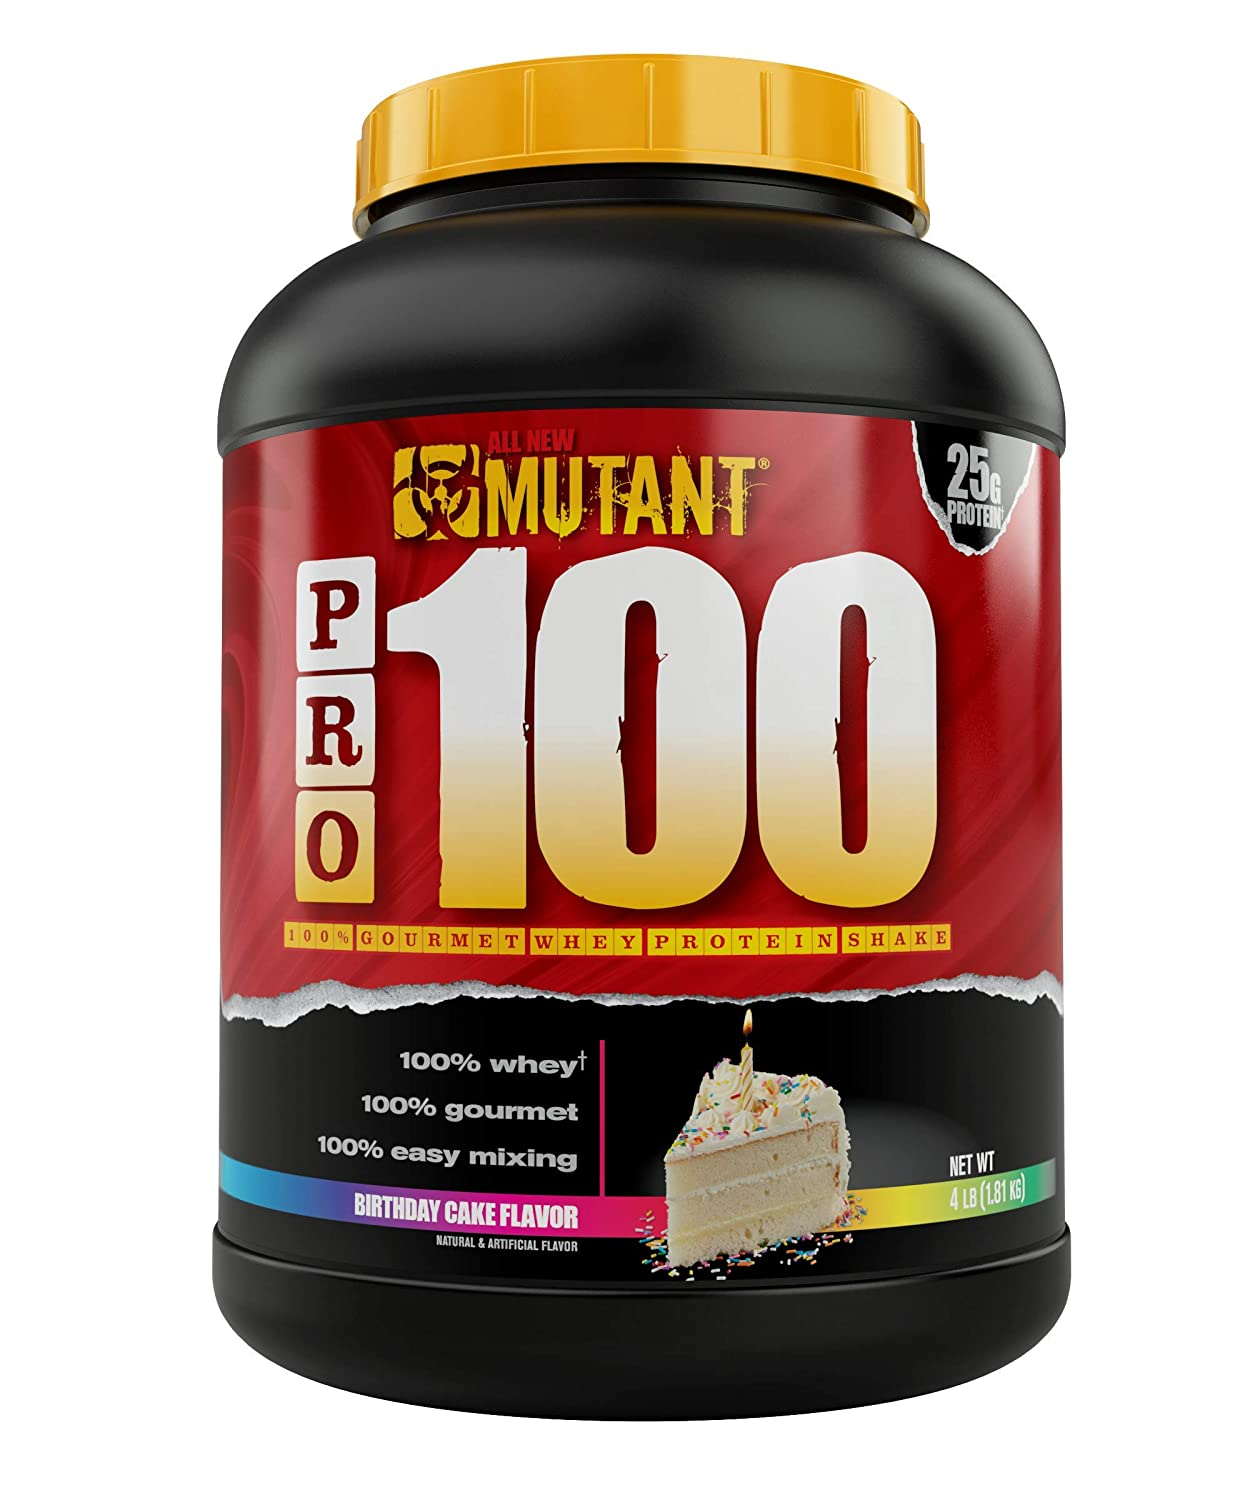 Mutant Pro a 100 Whey Protein Shake with No Hidden Ingredients, Comes in Delicious Gourmet Flavors, 4 lb – Birthday Cake